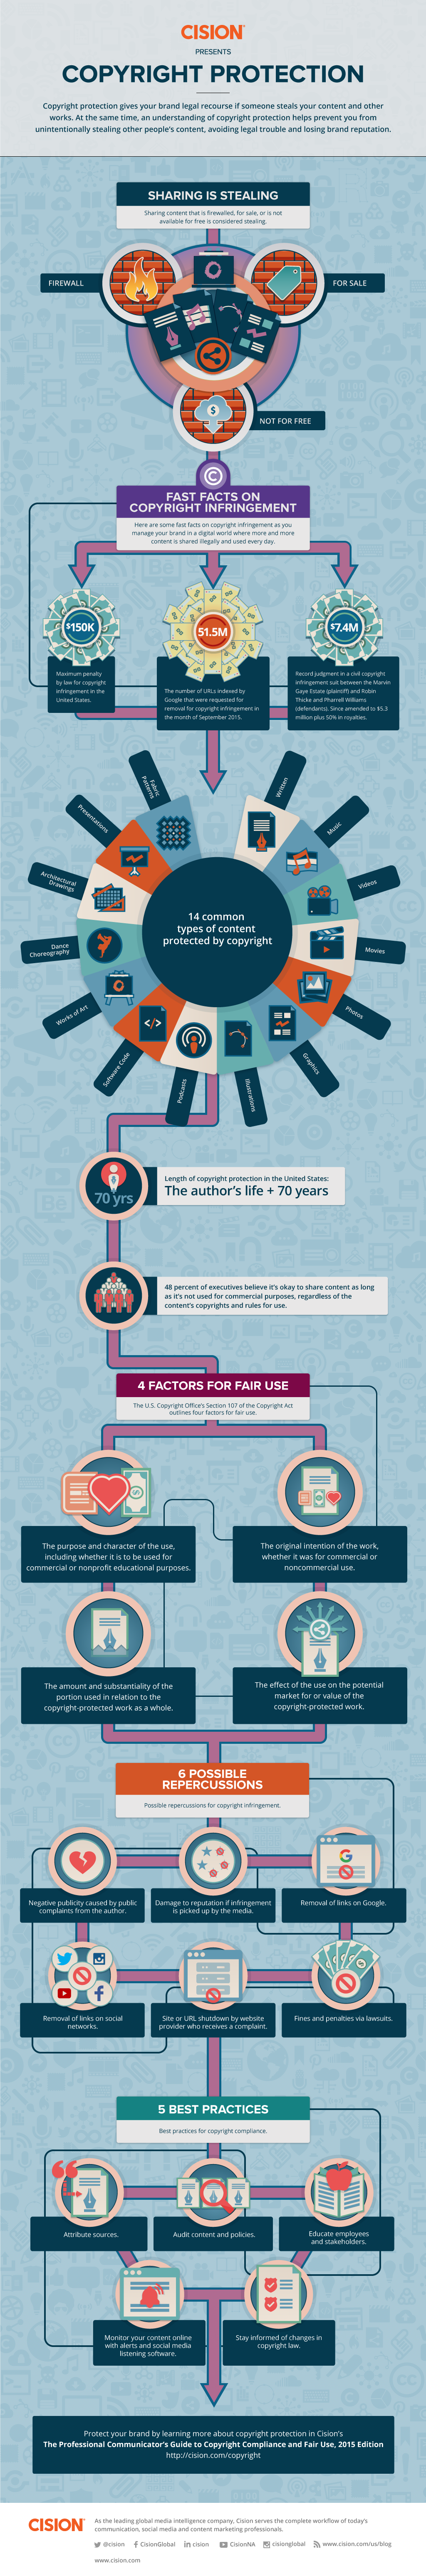 Cision_Copyright-Infographic